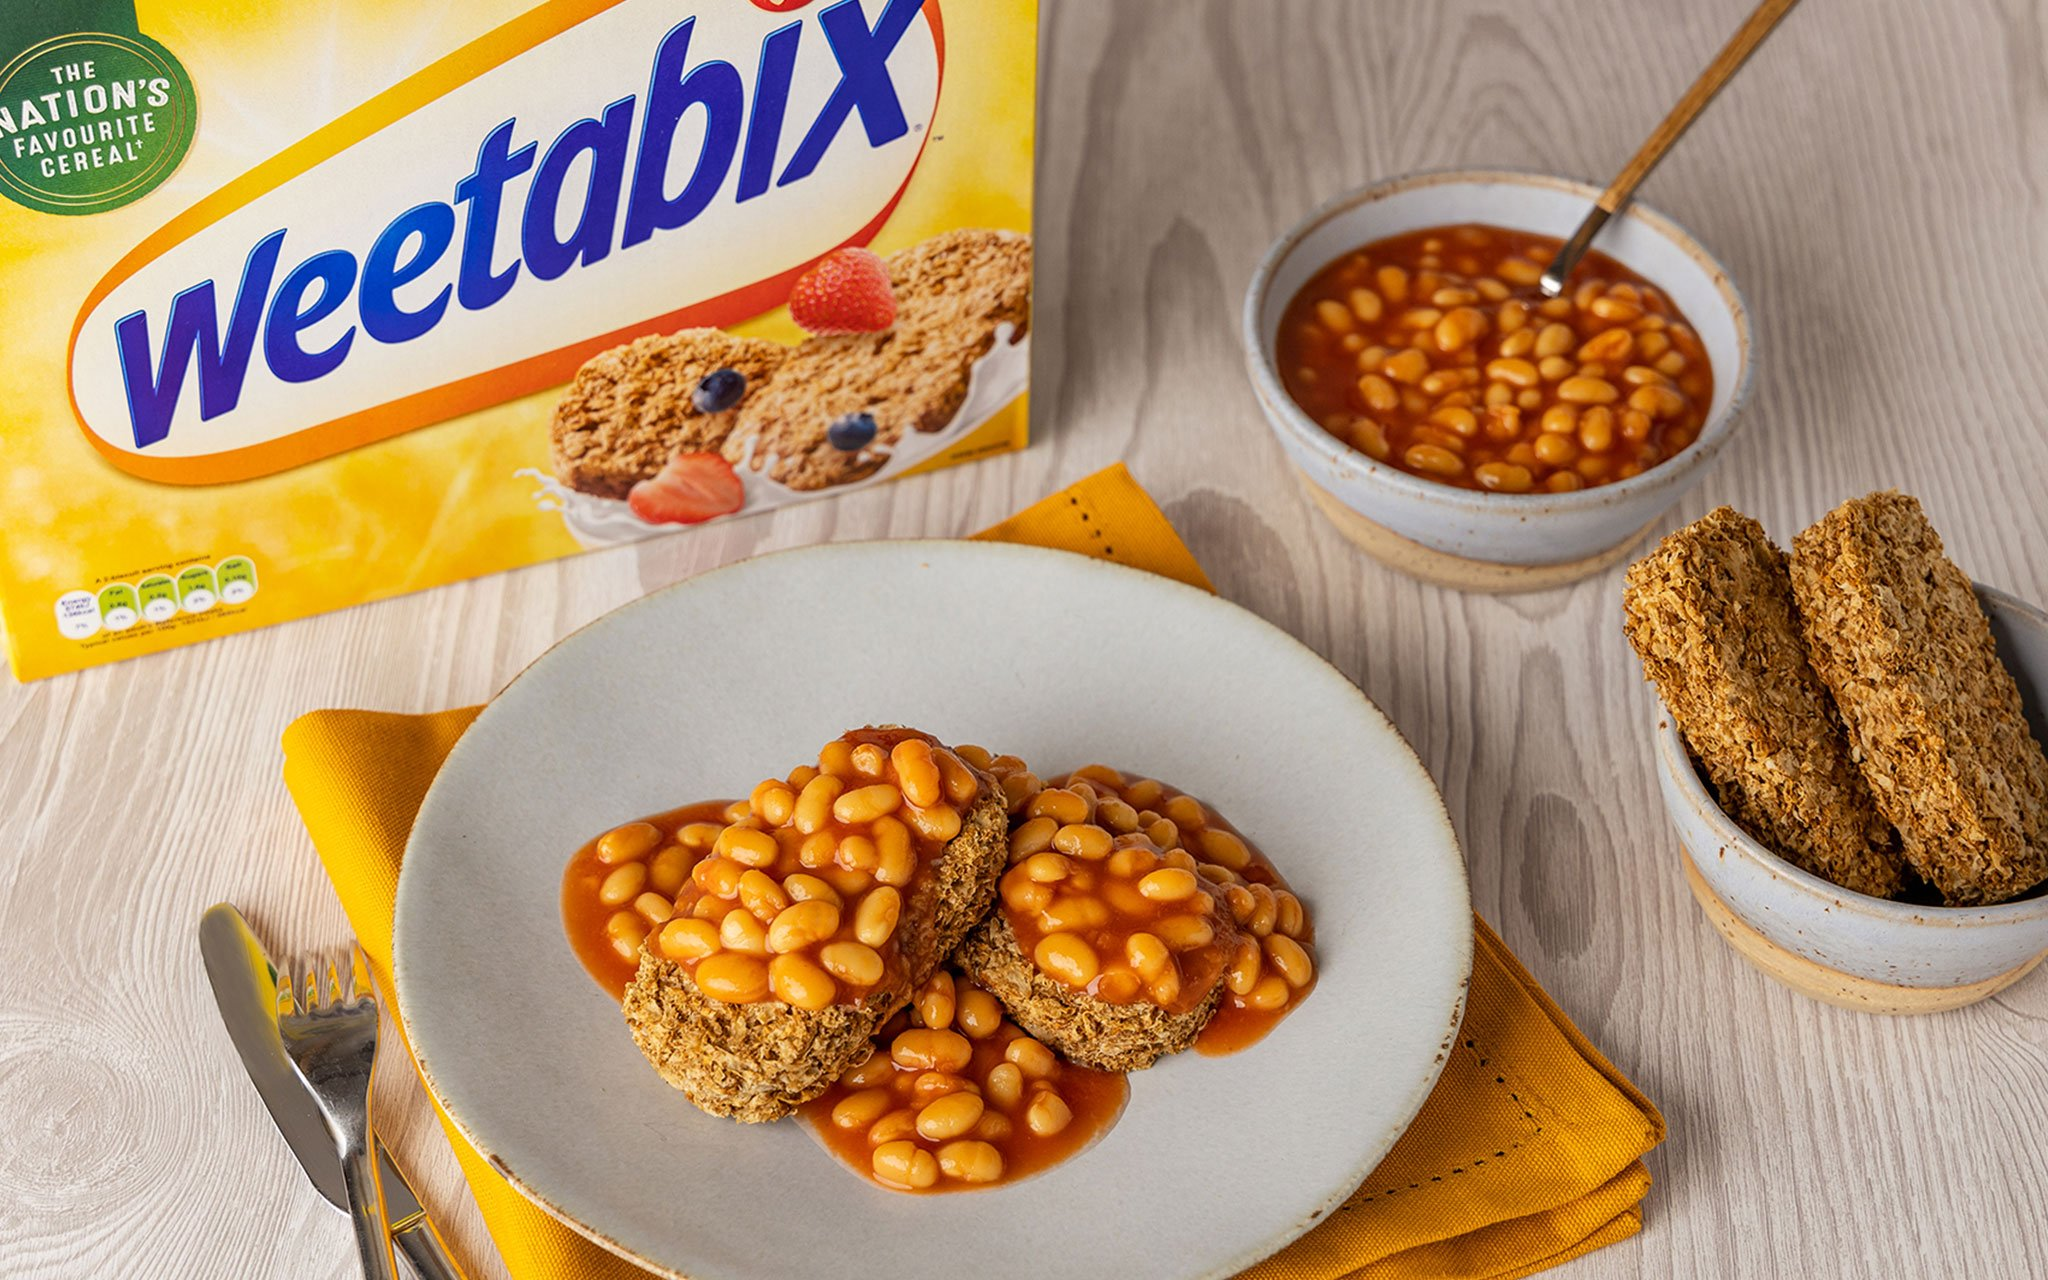 Weetabix that Tweet and why it worked so well - Weetabix, that Tweet, and why it worked so well